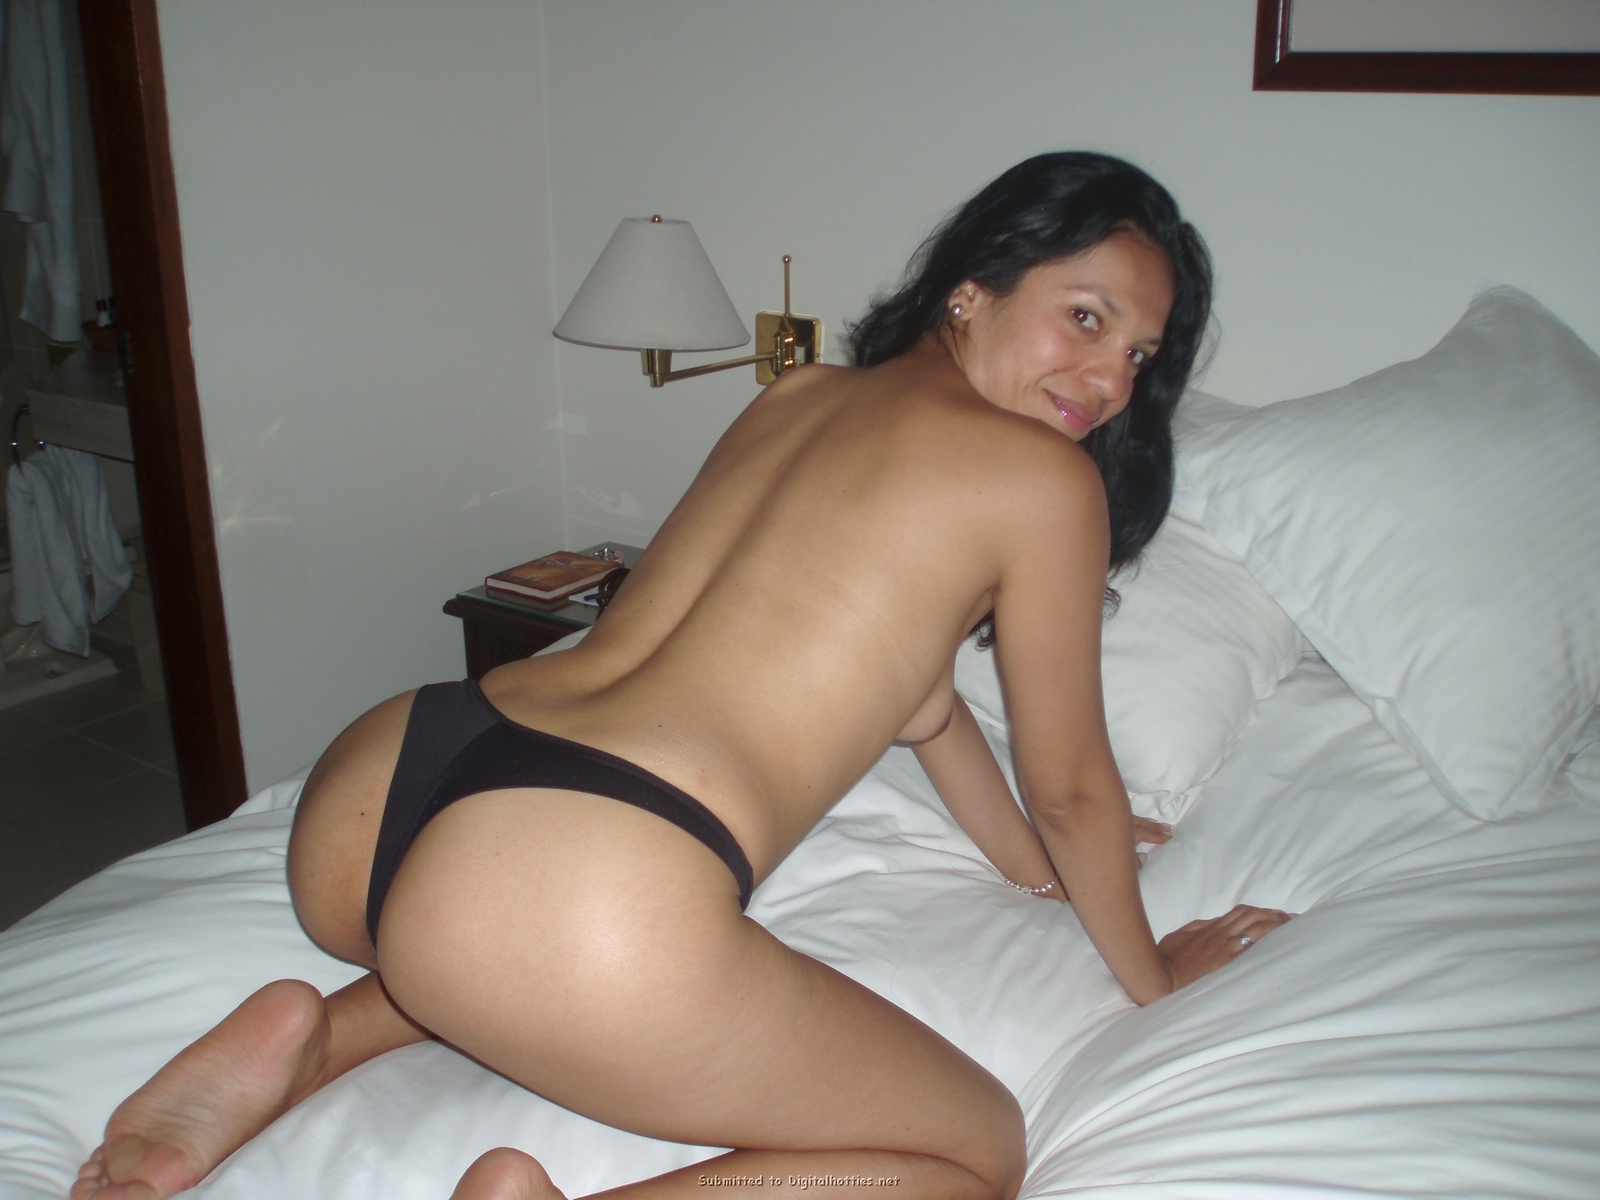 Regret, My naked latina wife speaking